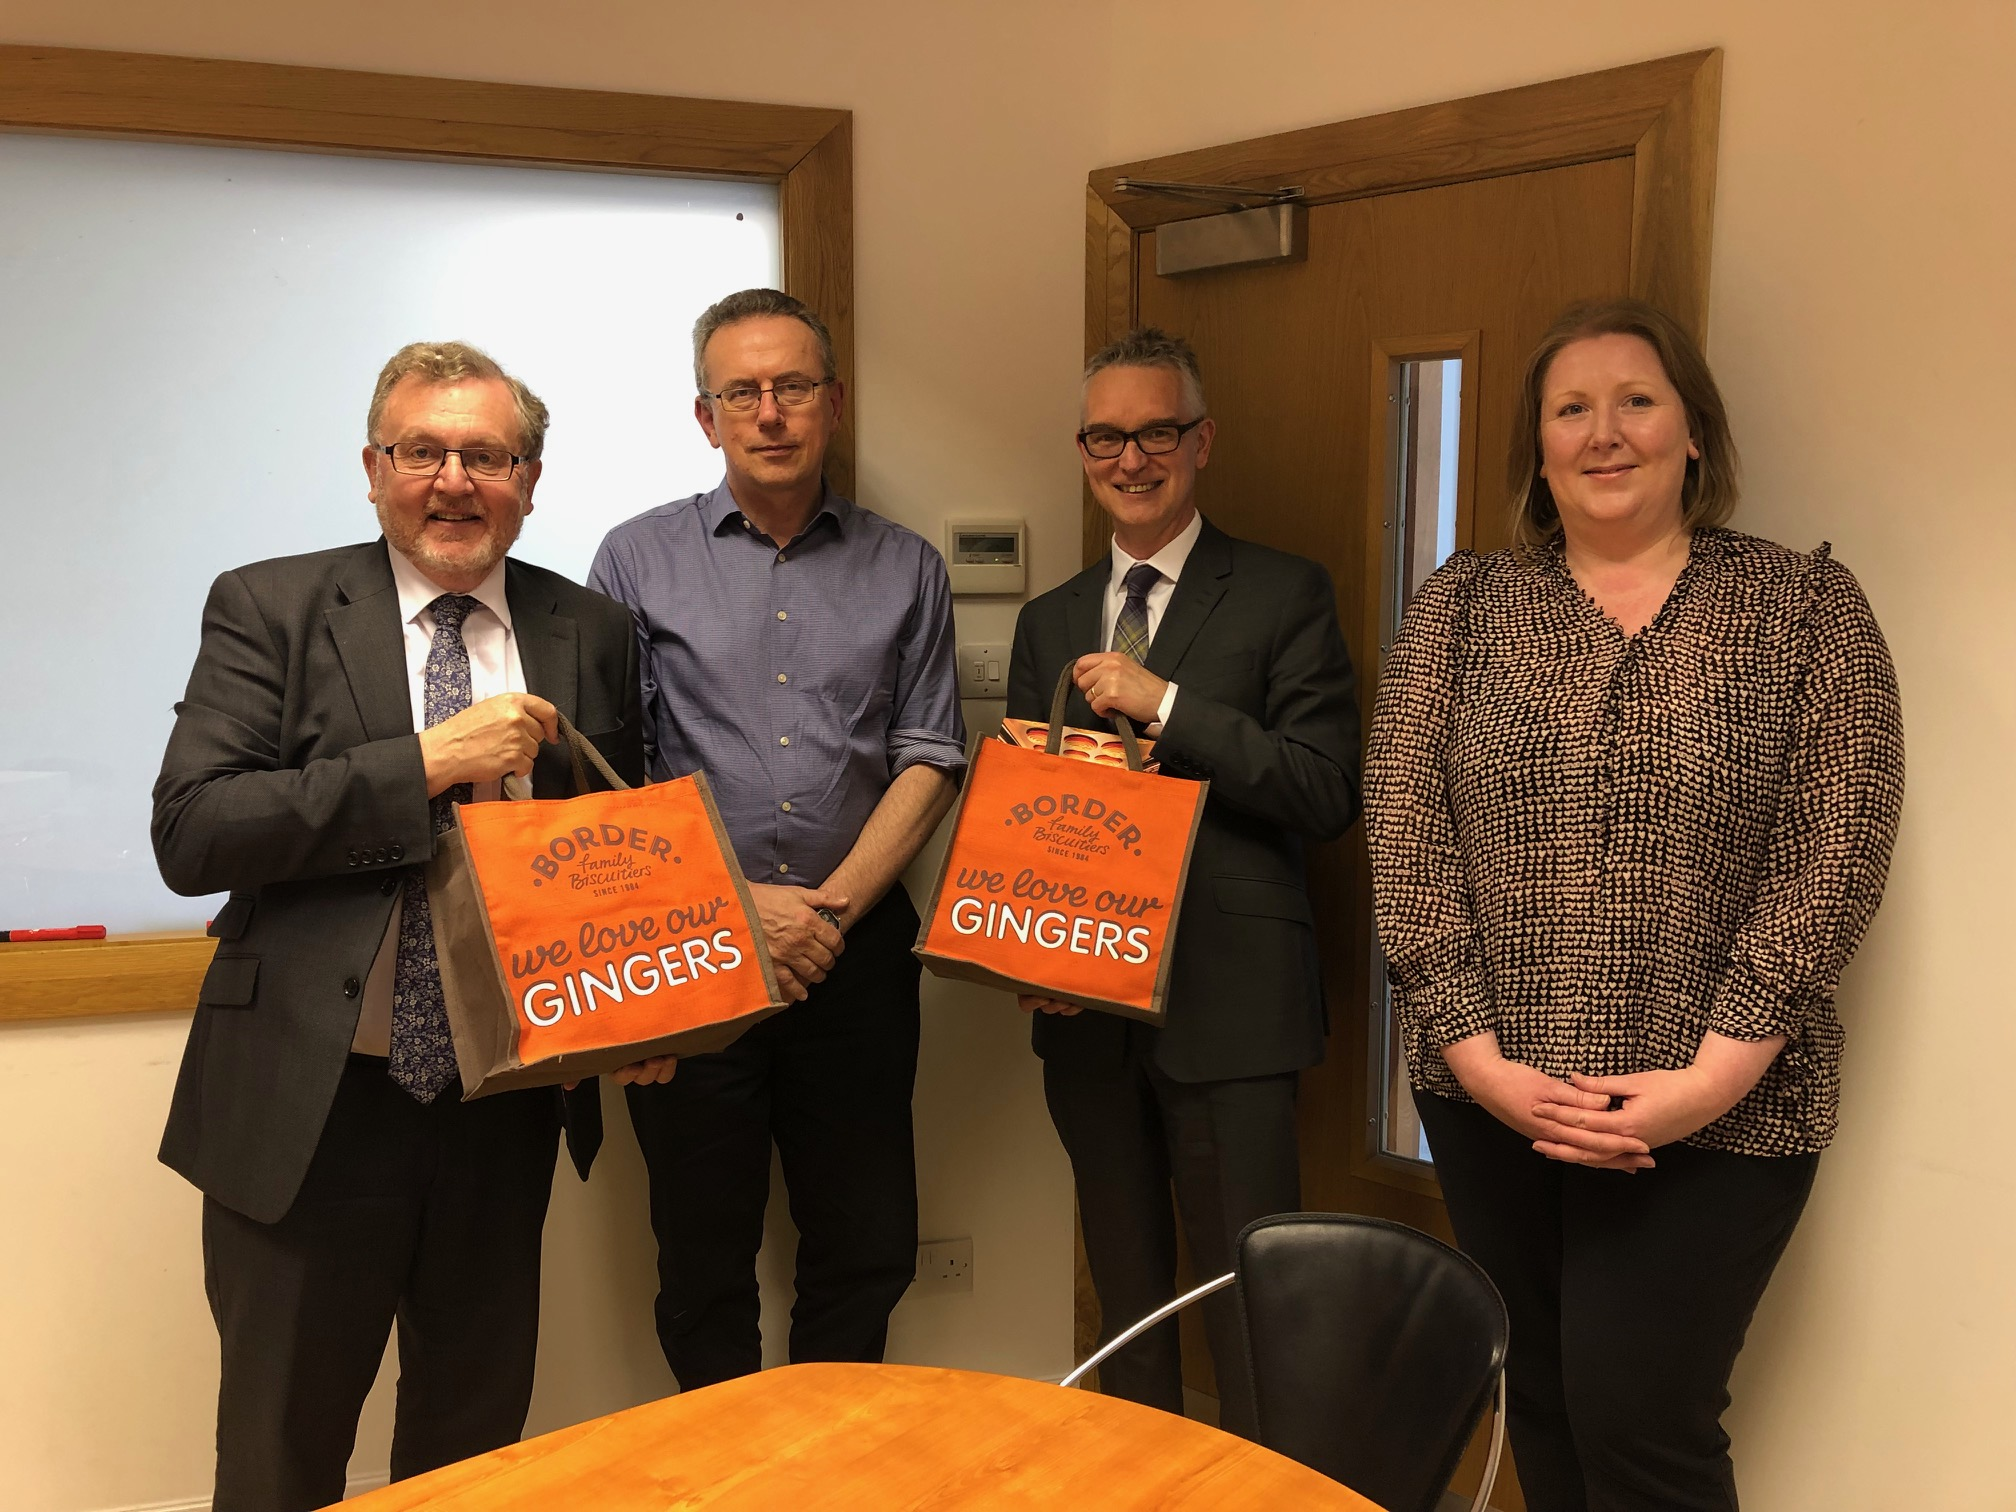 Border Biscuits with David Mundell MP